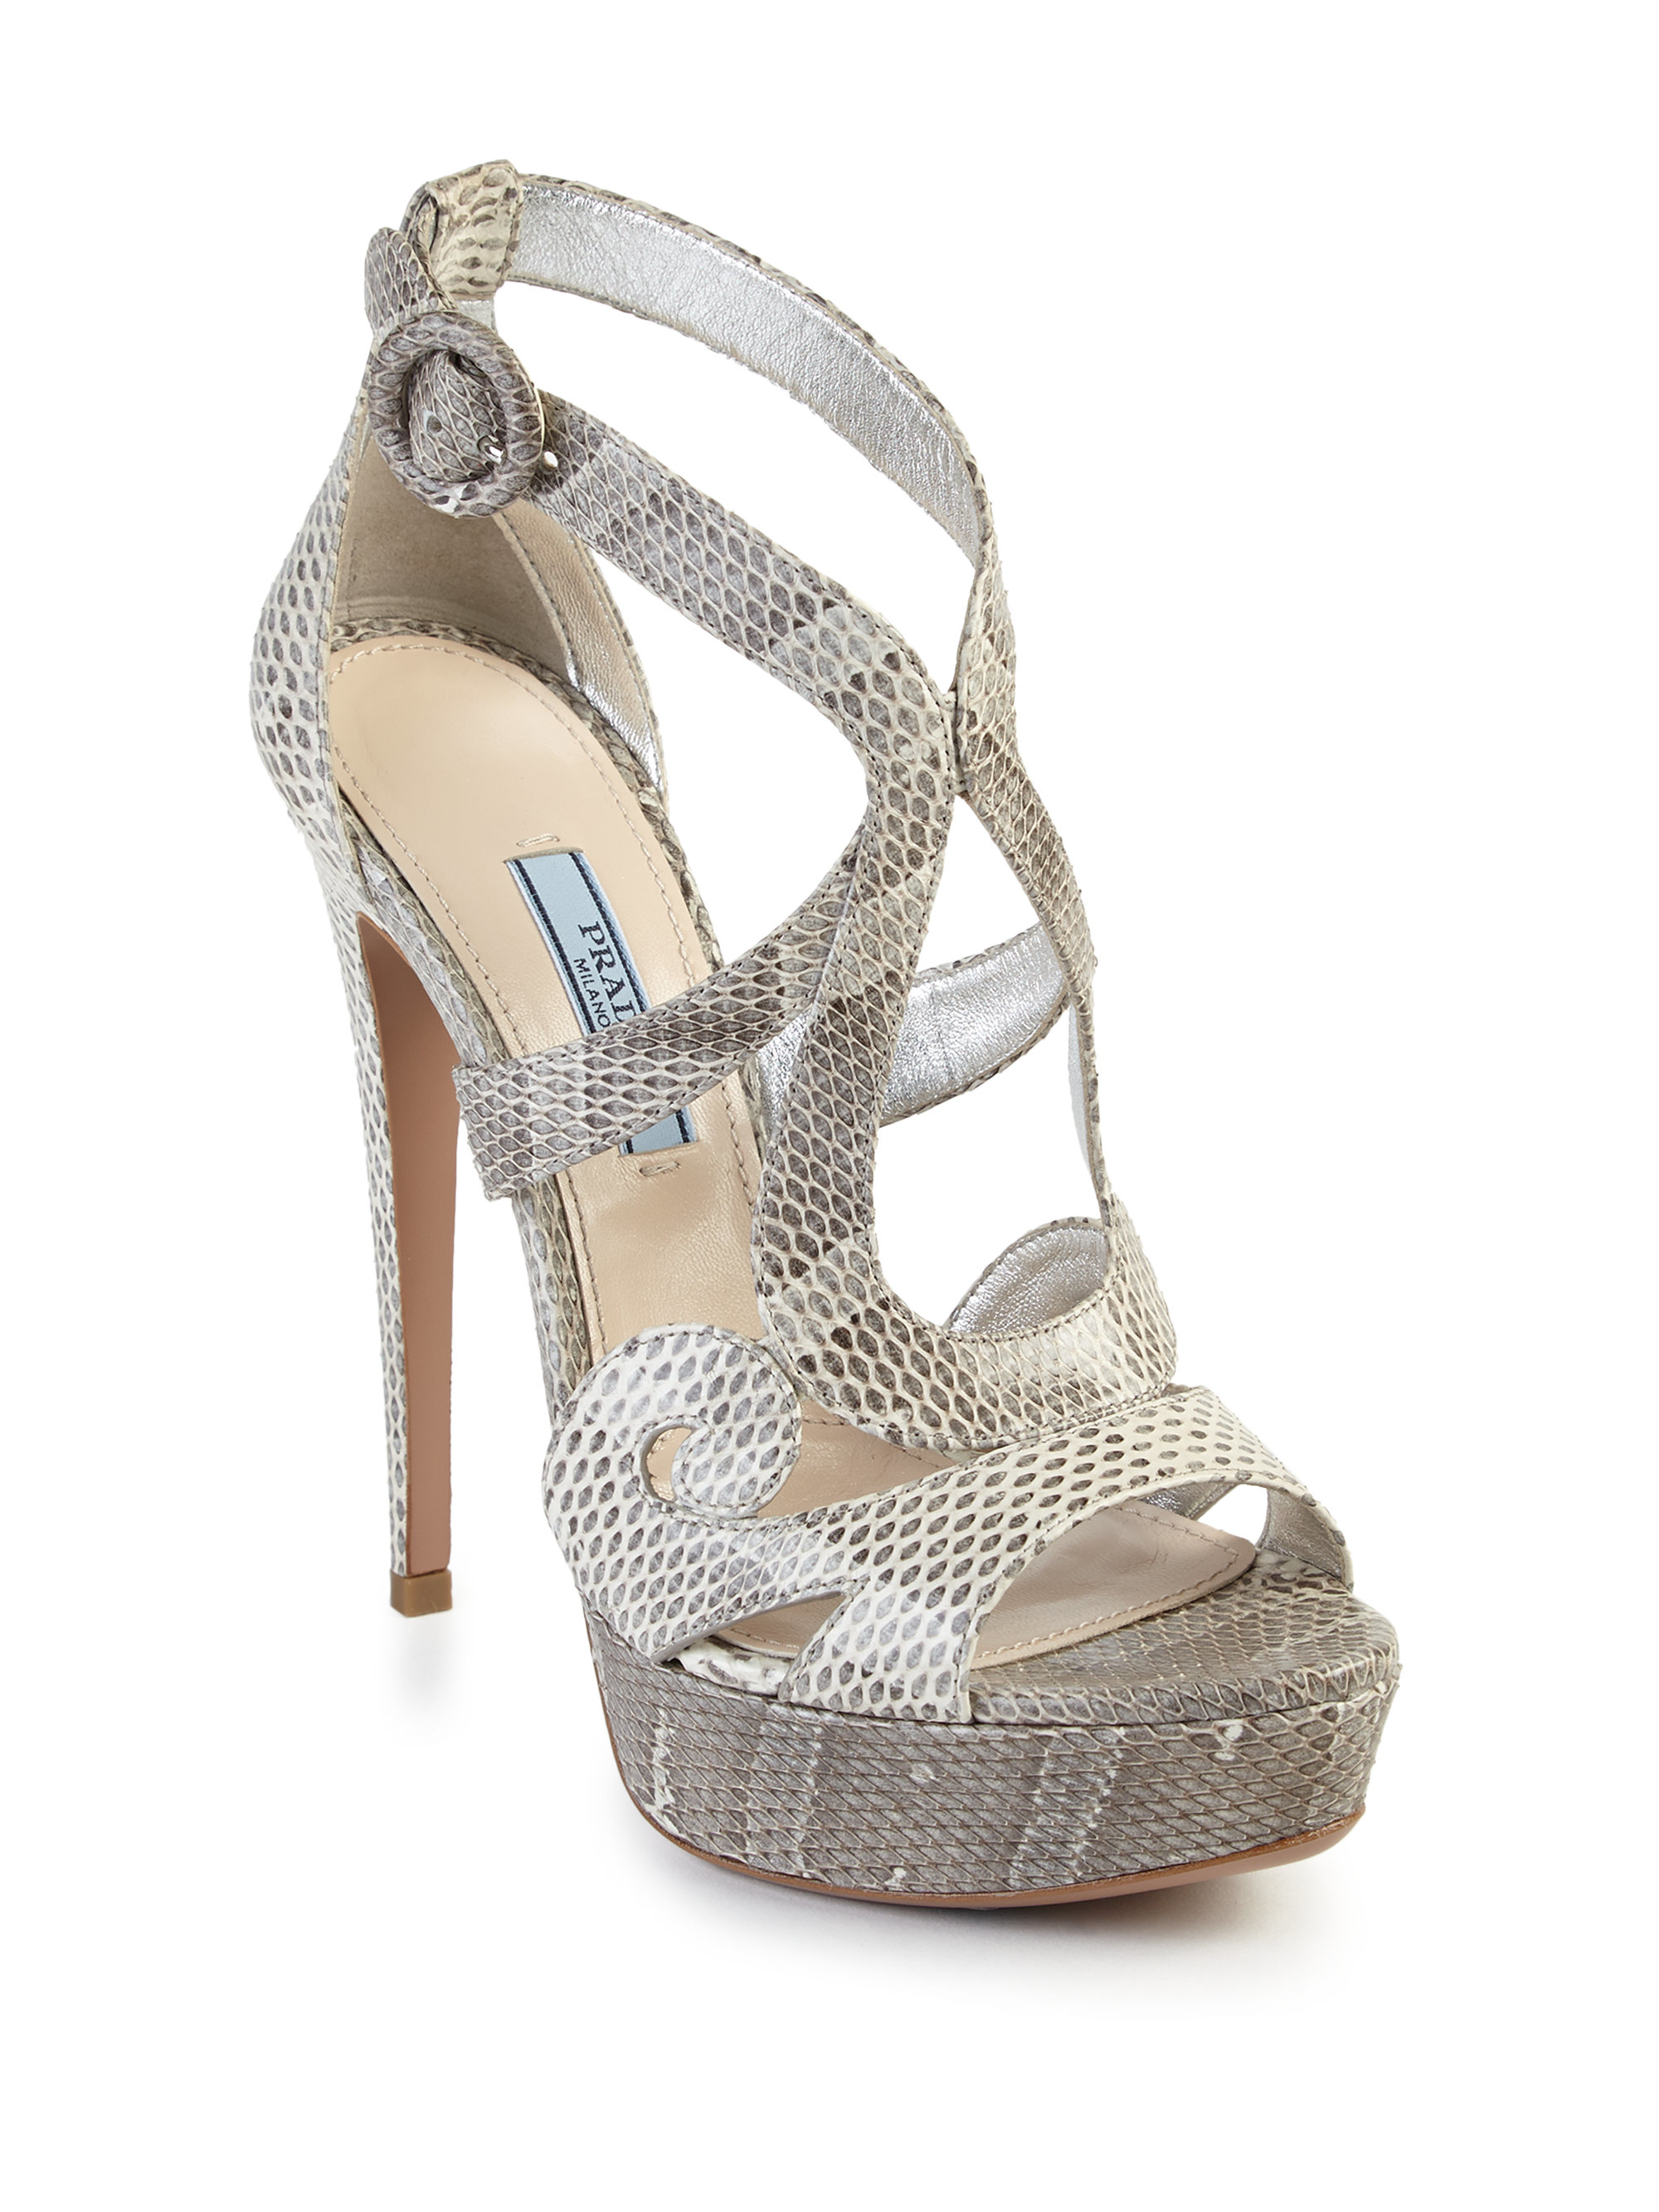 outlet the cheapest 100% authentic Prada Snakeskin Platform Sandals lowest price cheap price wholesale price cheap online outlet good selling LyUFS